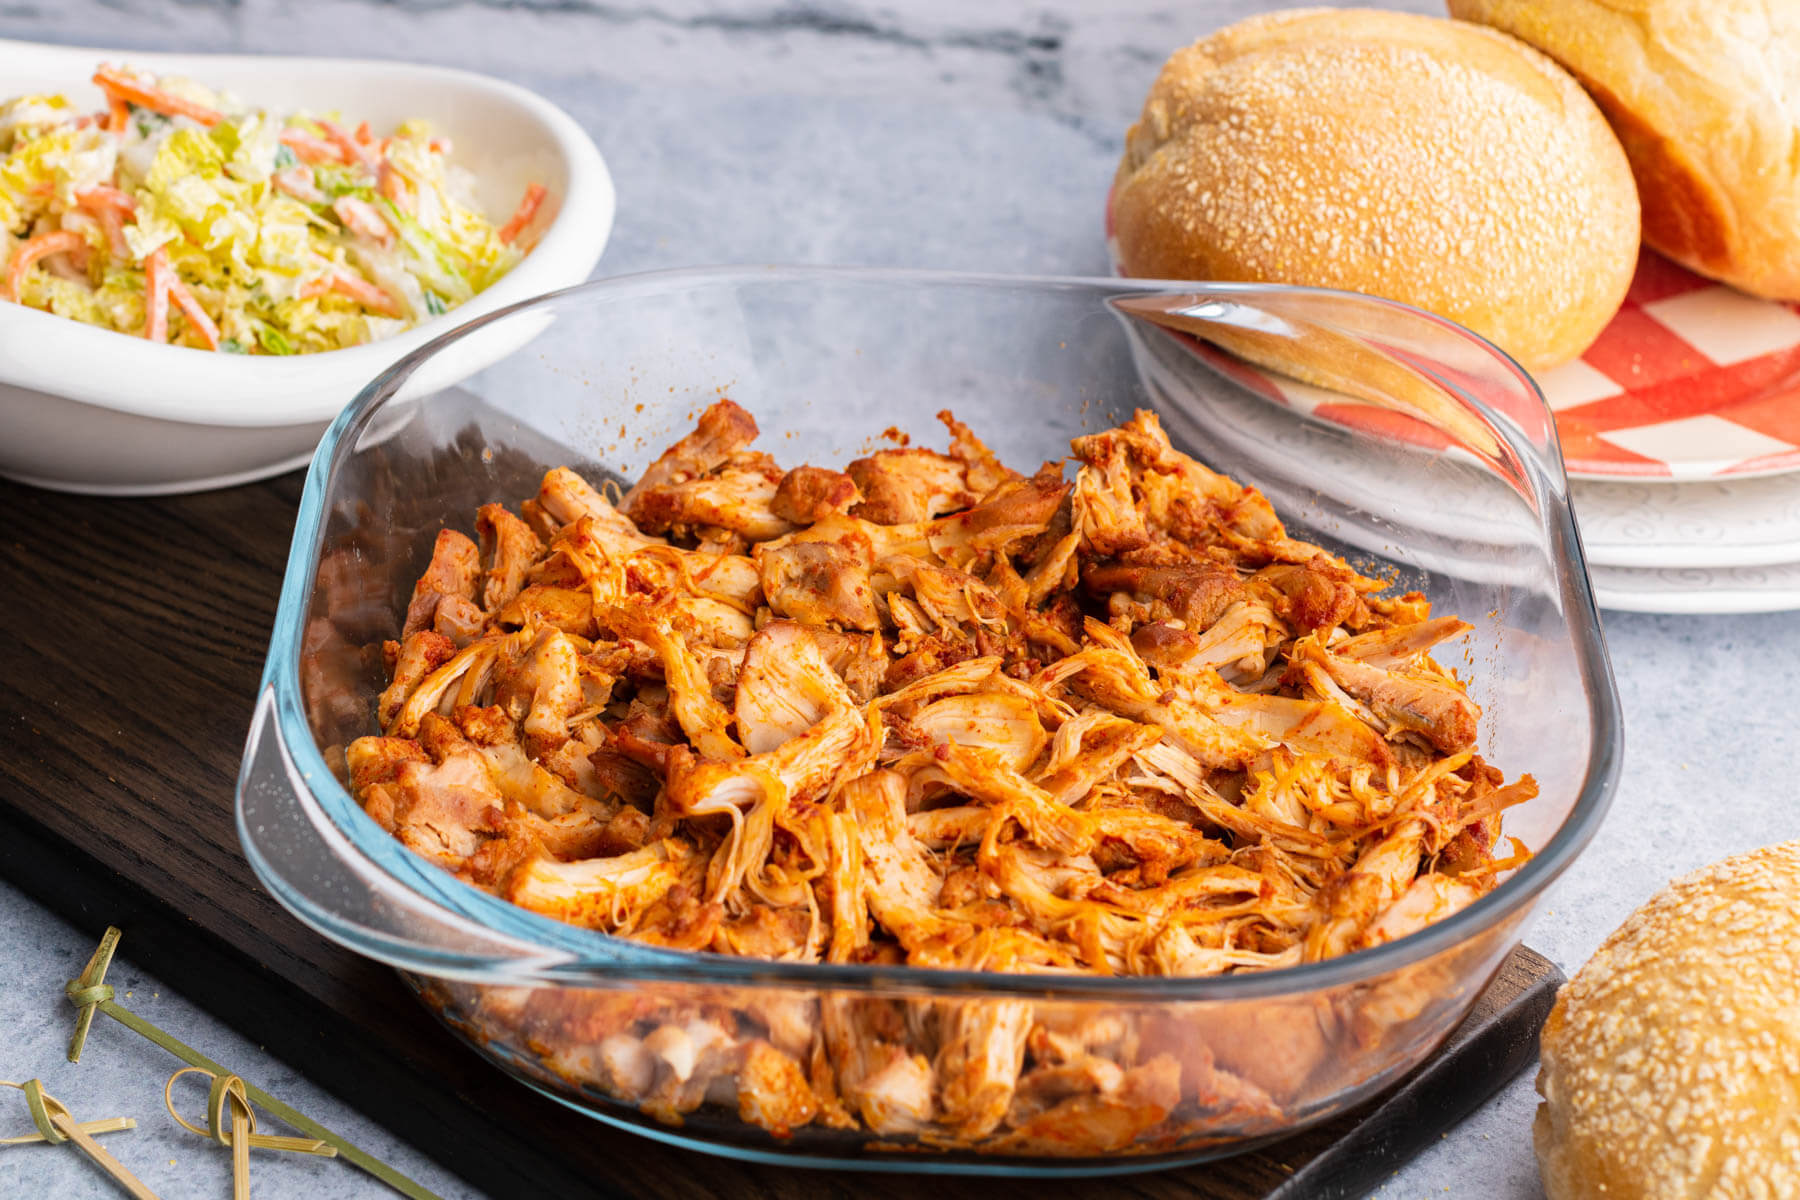 A glass dish filled with BBQ Pulled Chicken with no sauce.